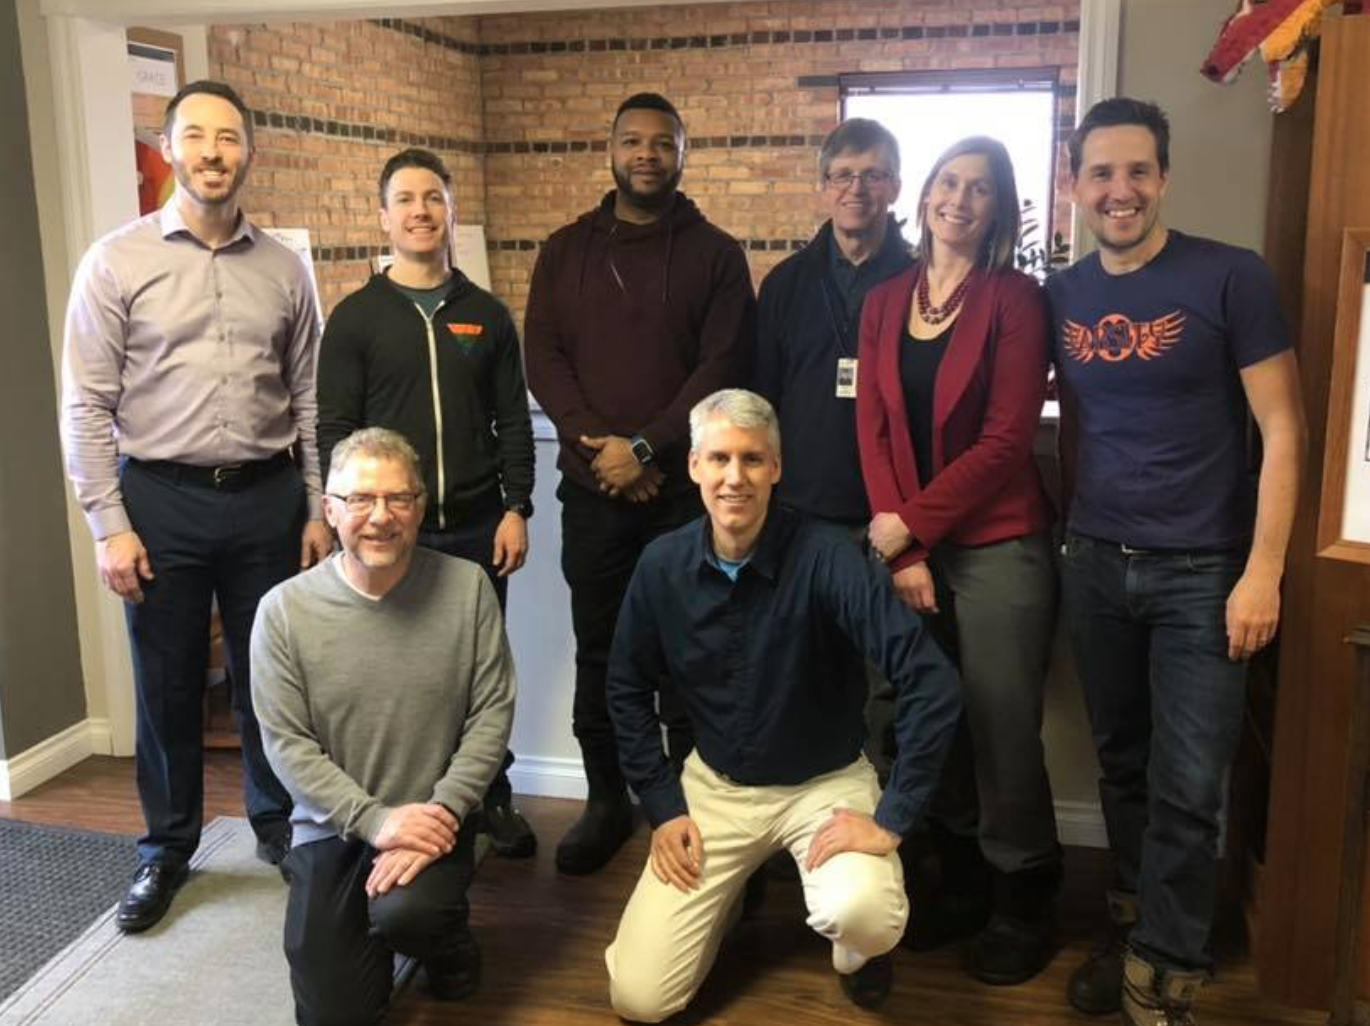 Our Safe Routes to School team included representatives from advocacy groups, city government and both public and private/parochial schools led by  Mark VanderKlipp , Connect_CX partner and Systems Practice Sherpa.